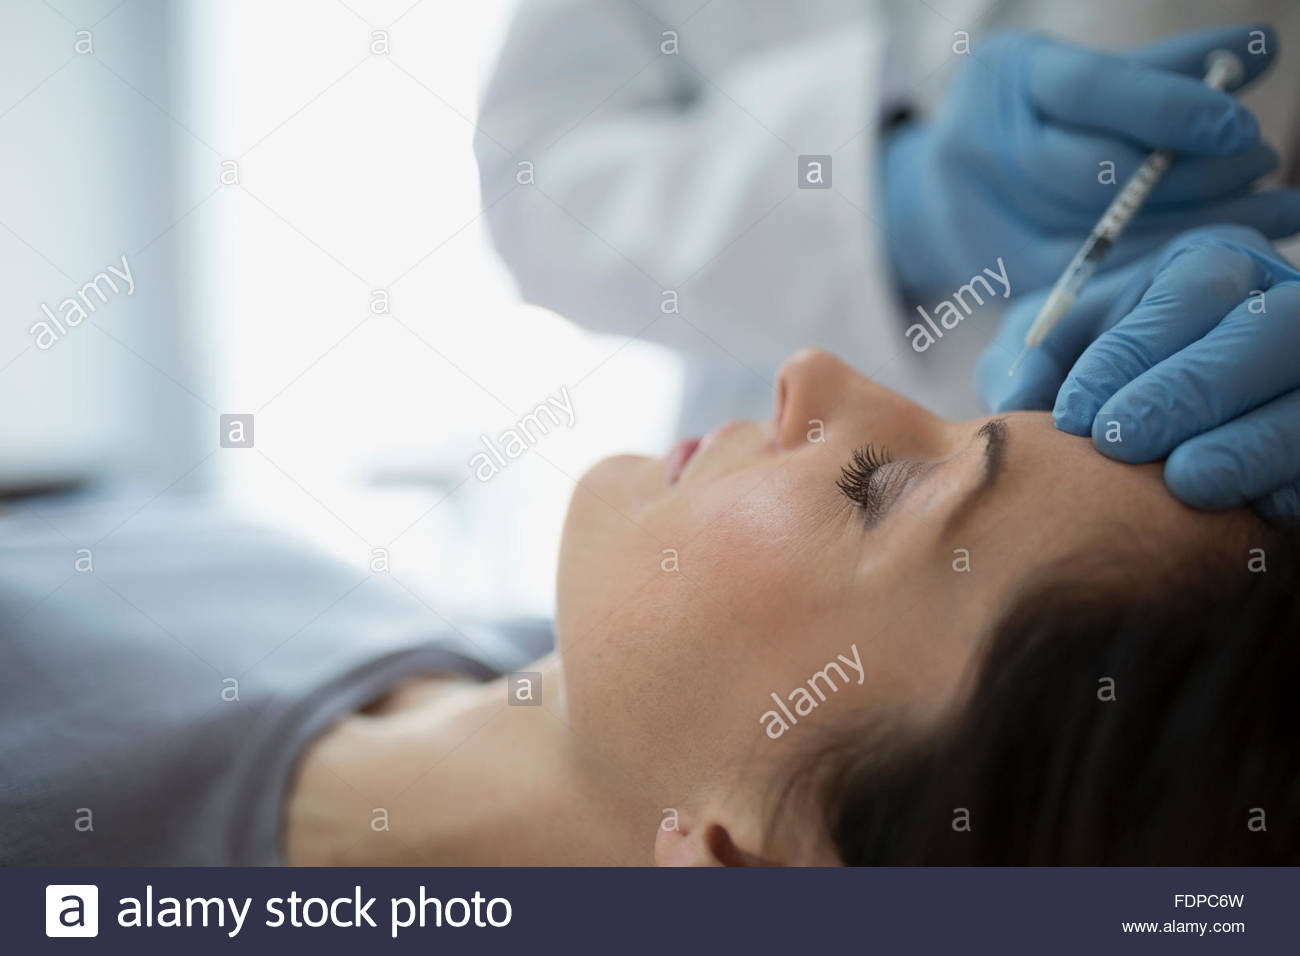 Woman receiving Botox injection in forehead - Stock Image